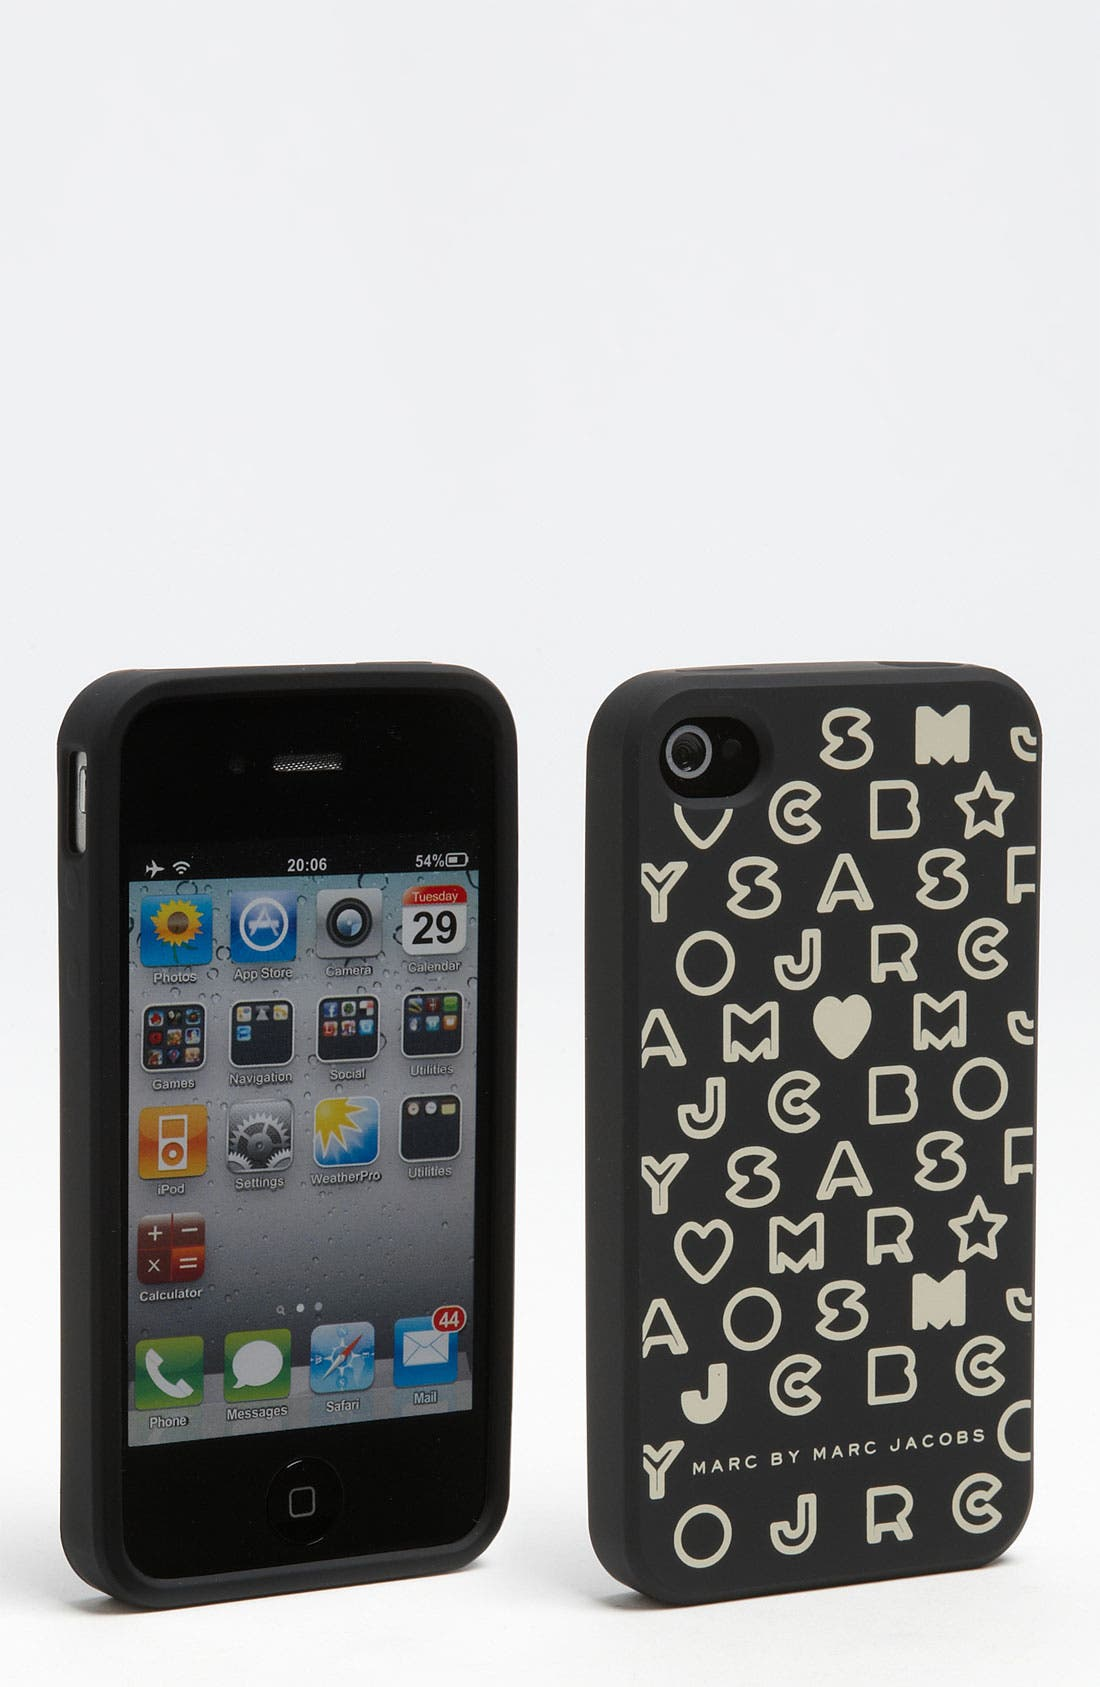 Alternate Image 1 Selected - MARC BY MARC JACOBS 'Stardust' iPhone 4 & 4S Case